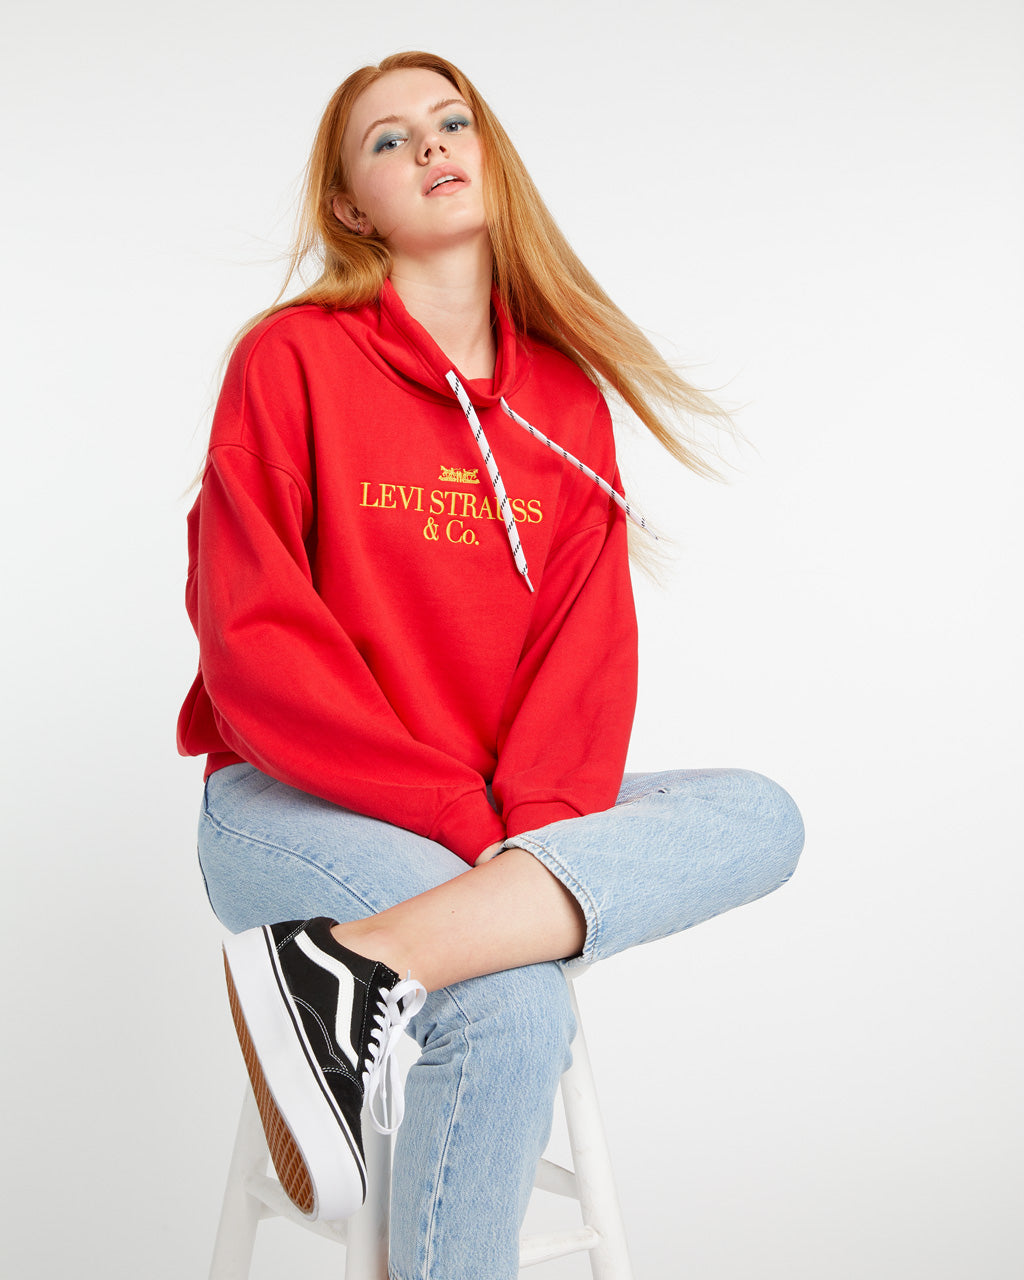 Red funnel neck sweatshirt with Levi's logo.